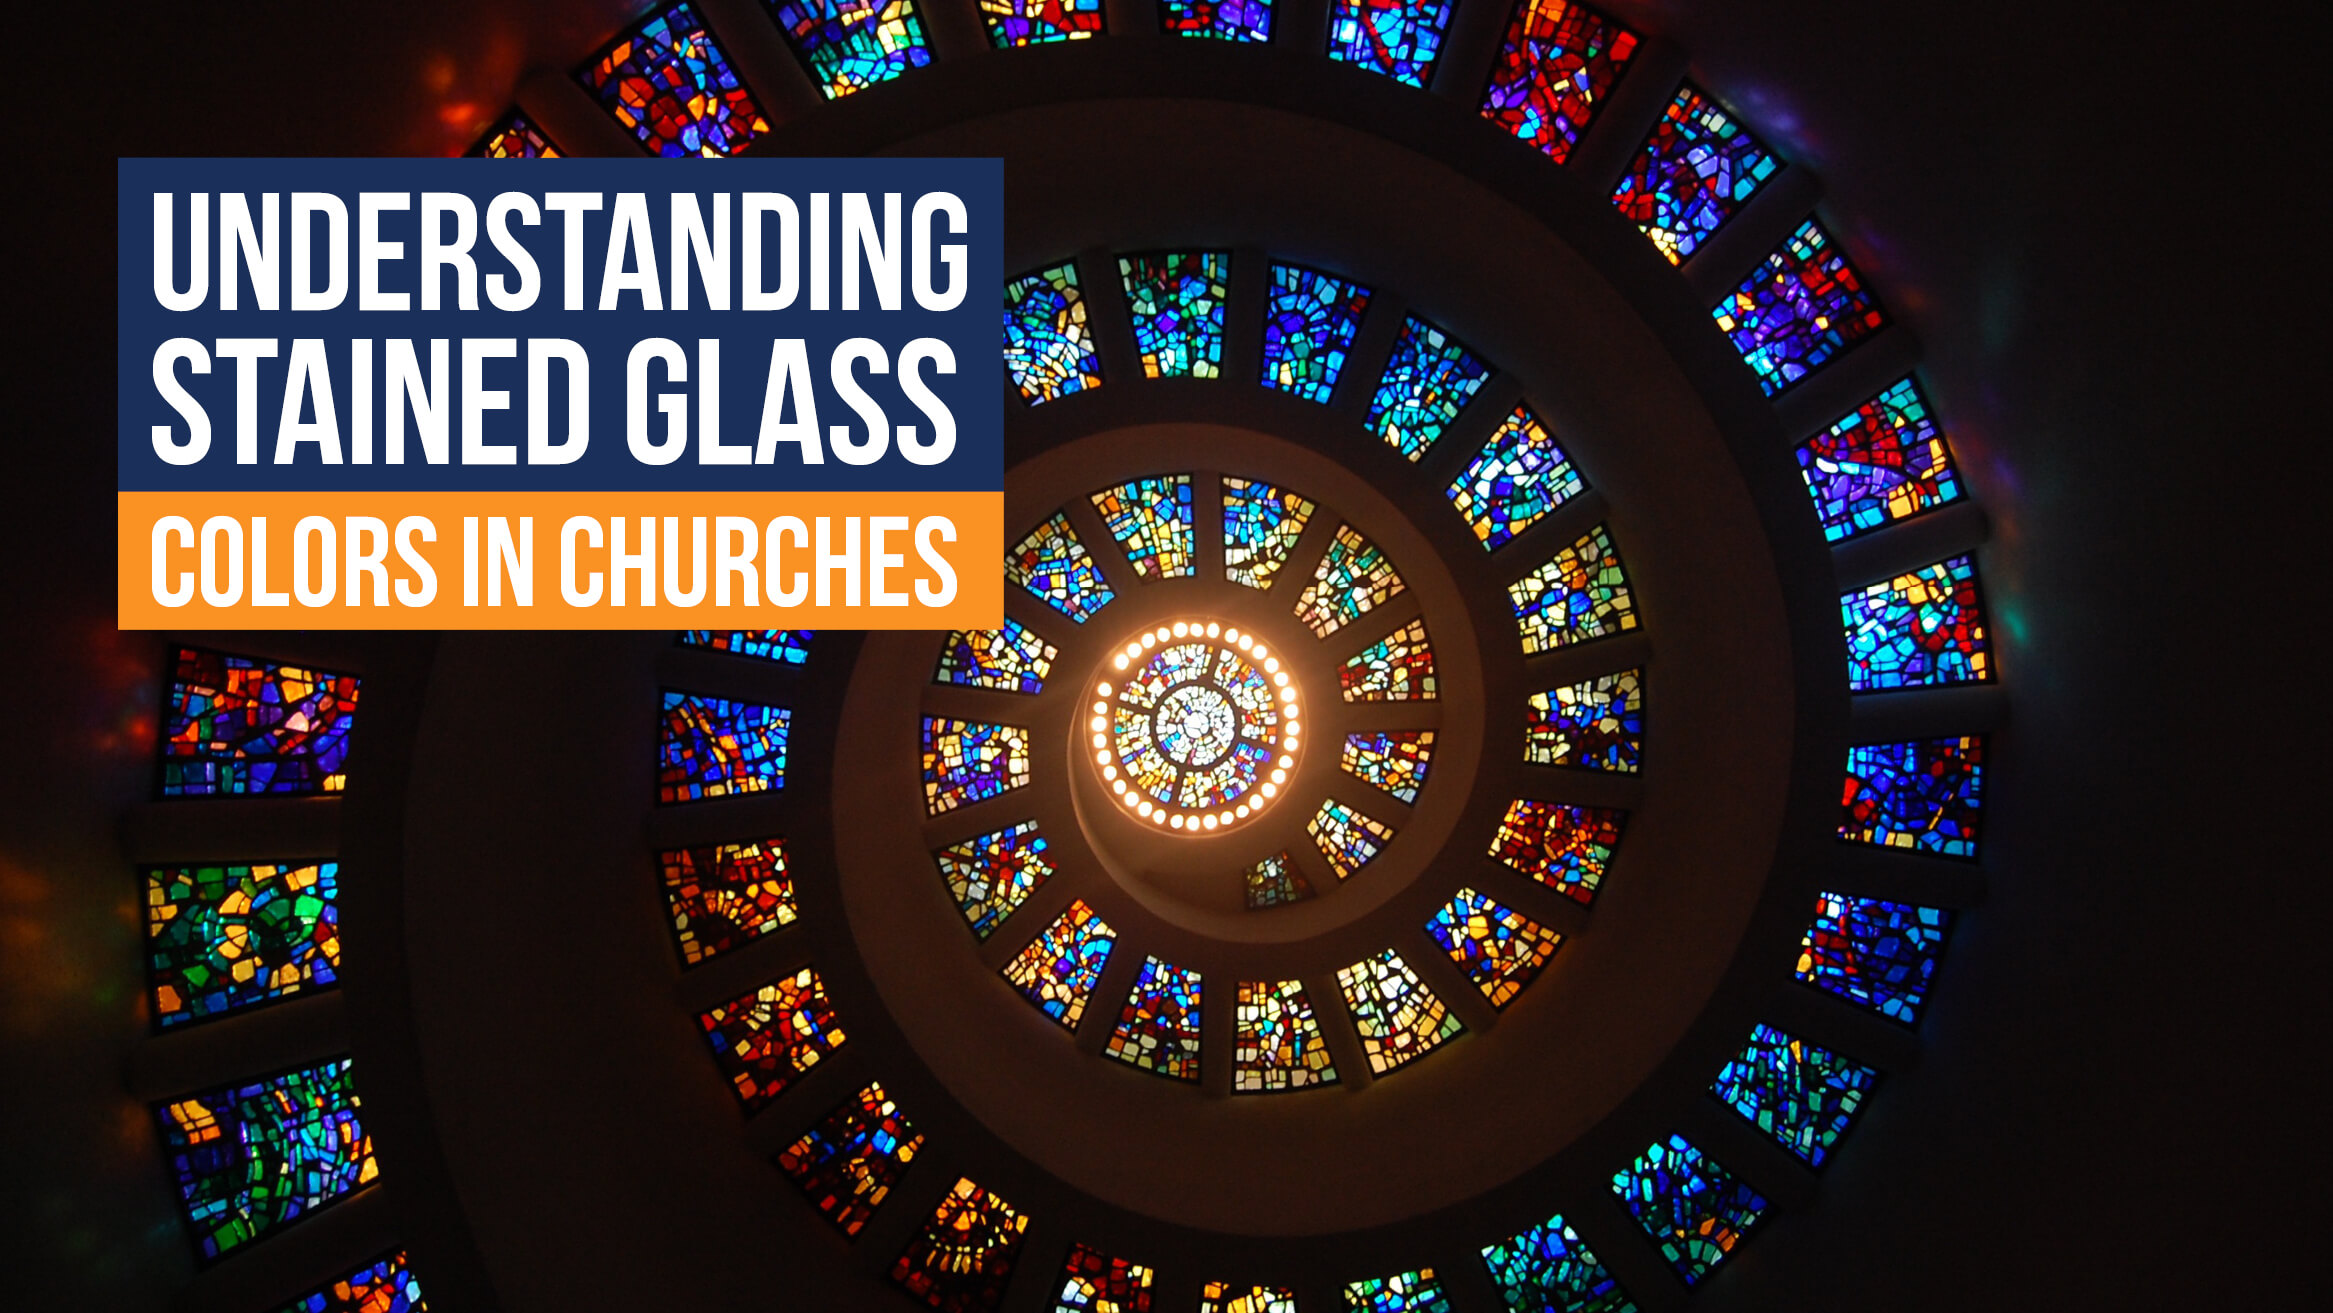 Understanding stained glass colors in churches header